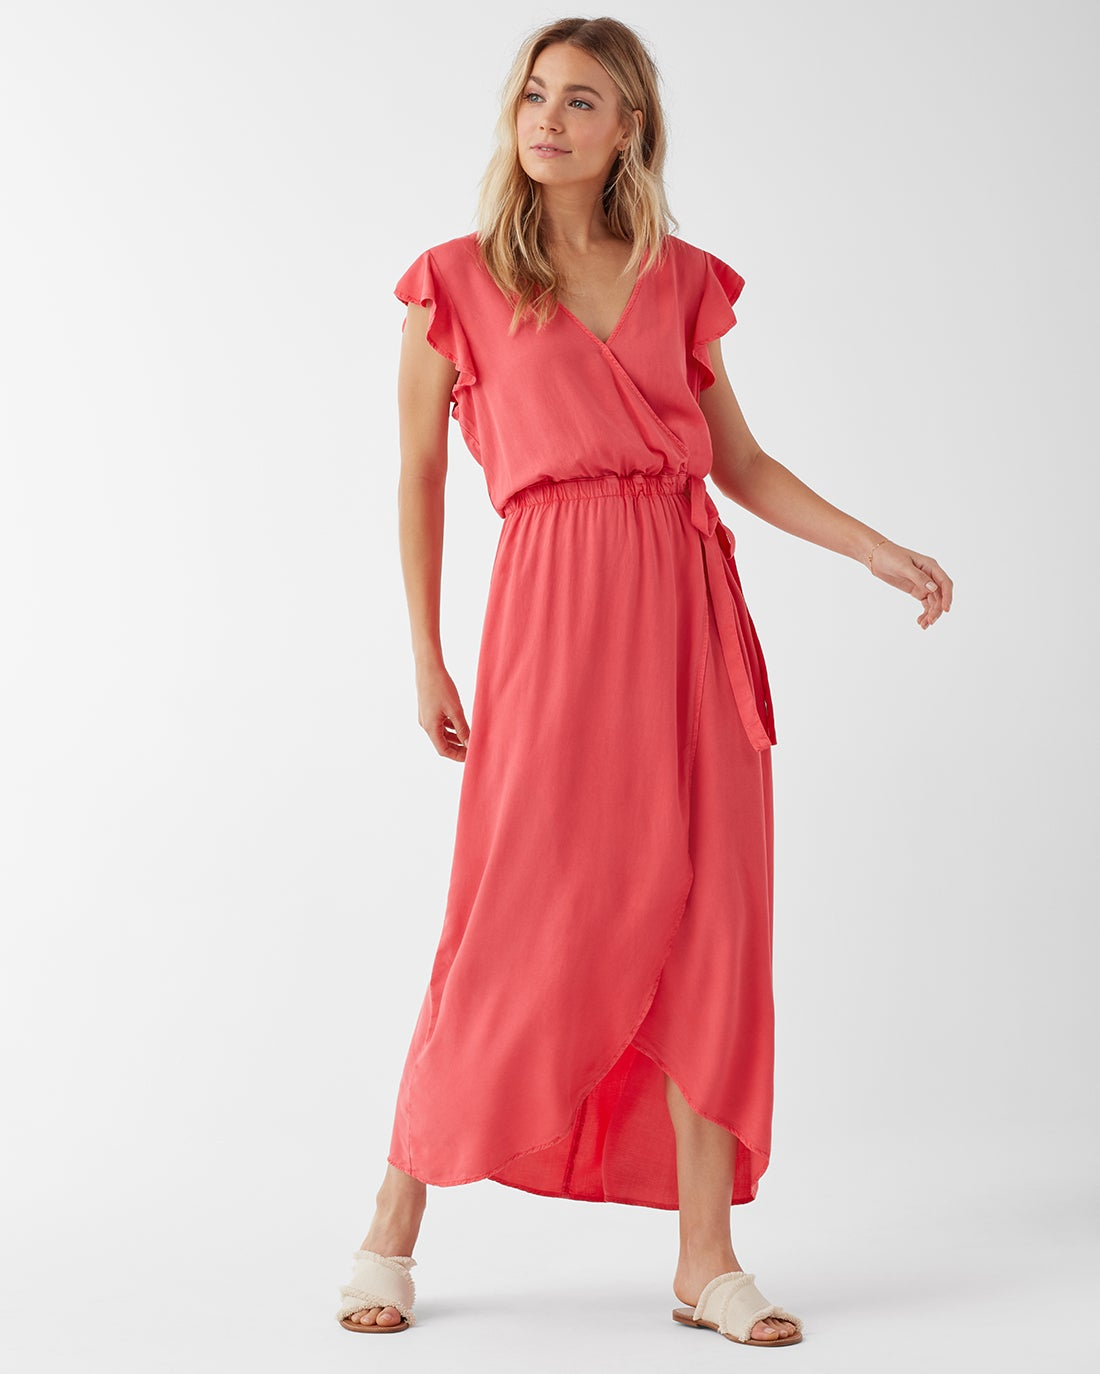 3af1ab16d1e0 The Zora Wrap Dress